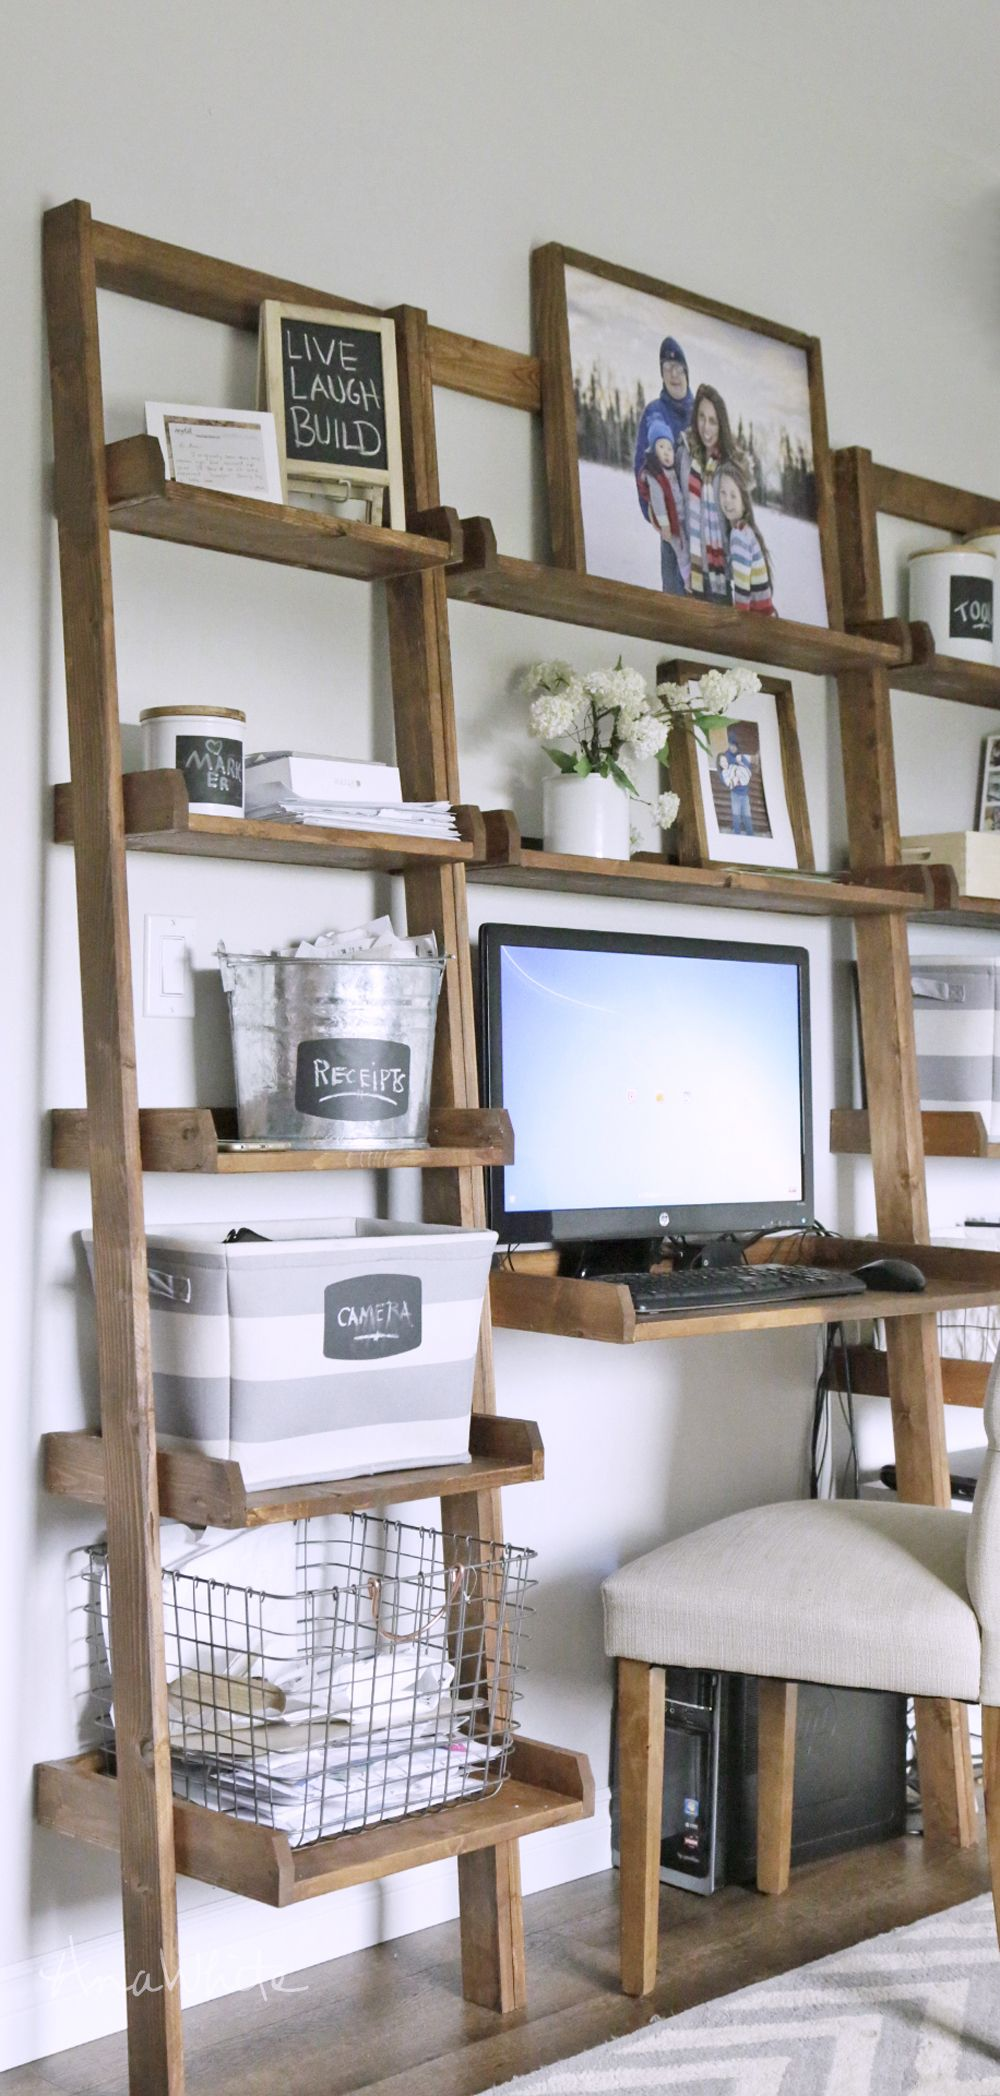 Ana white build a leaning ladder wall bookshelf free and easy